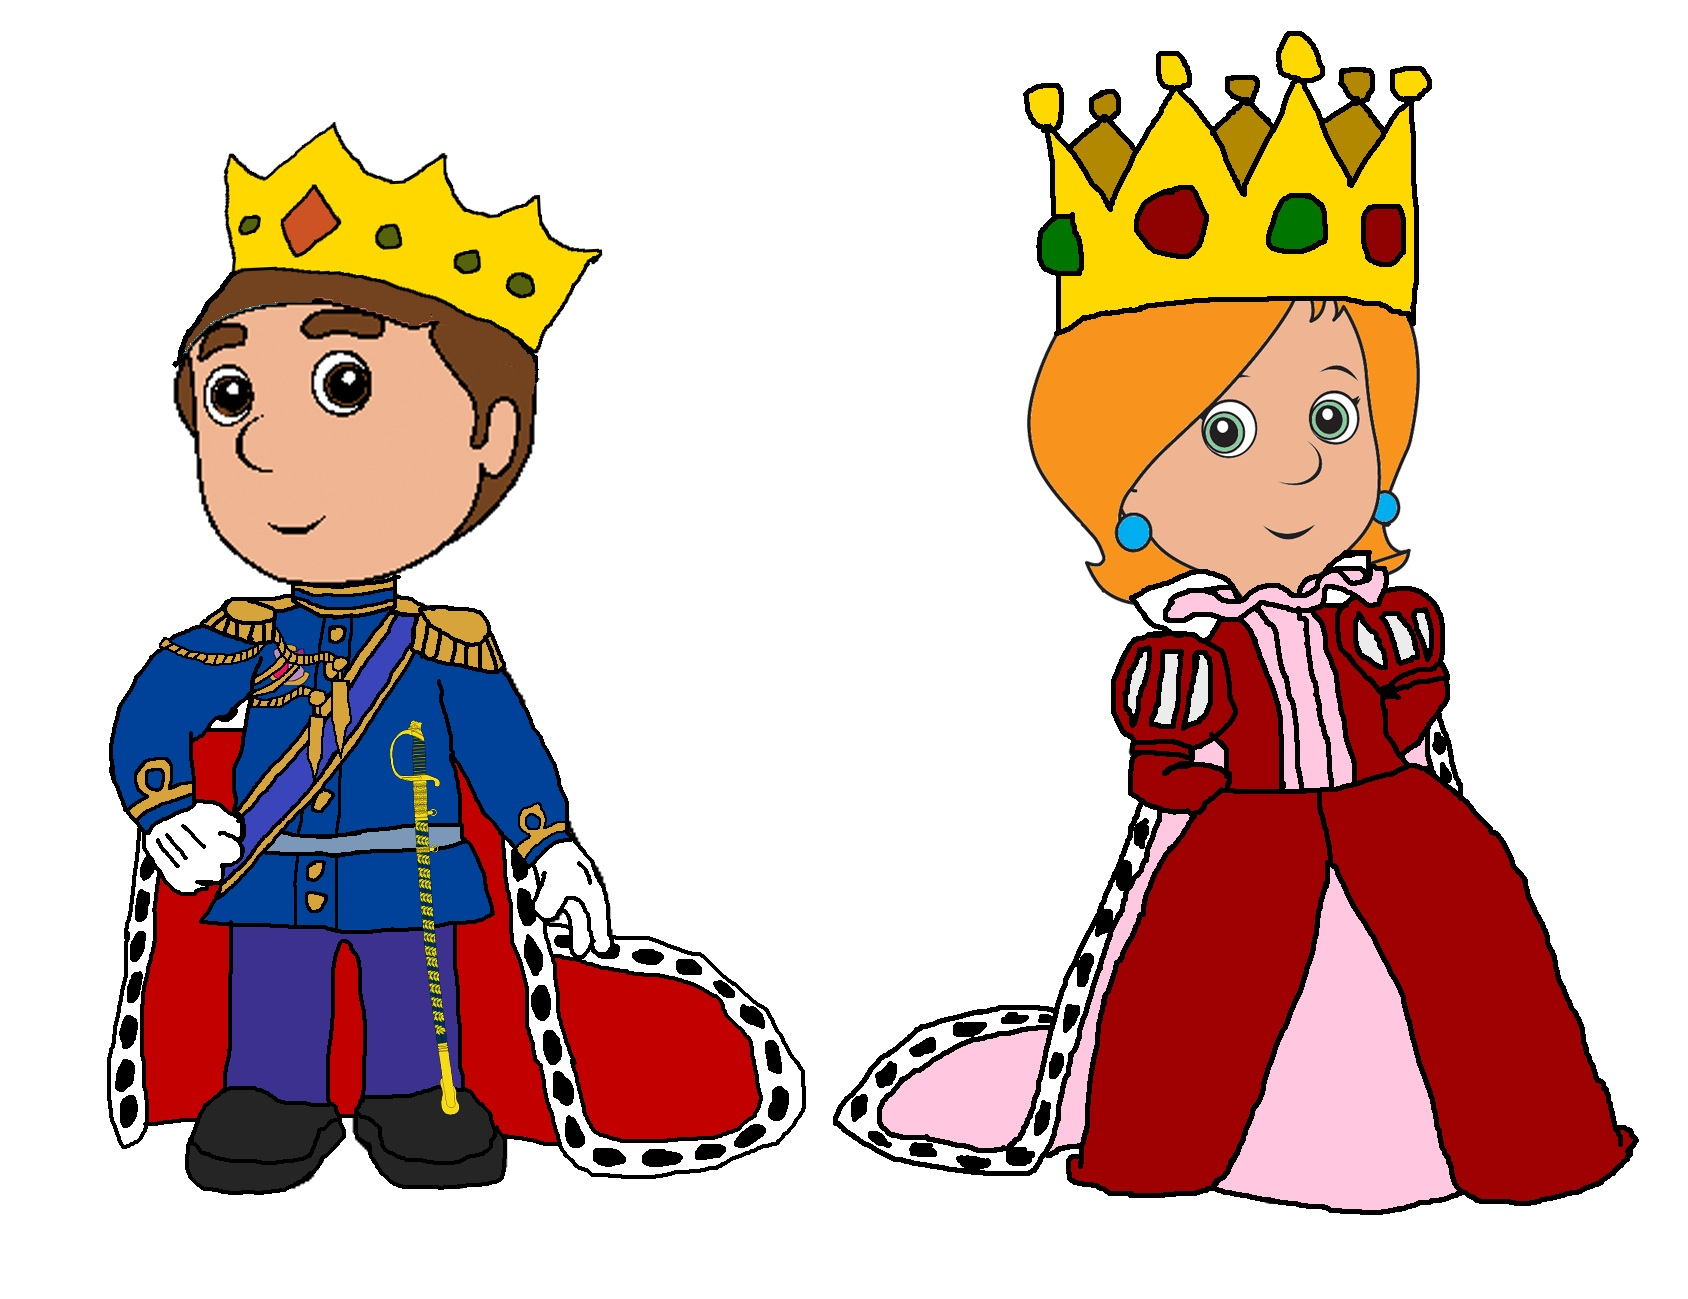 Clipart Of Kings. King Cliparts-Clipart Of Kings. King cliparts-2